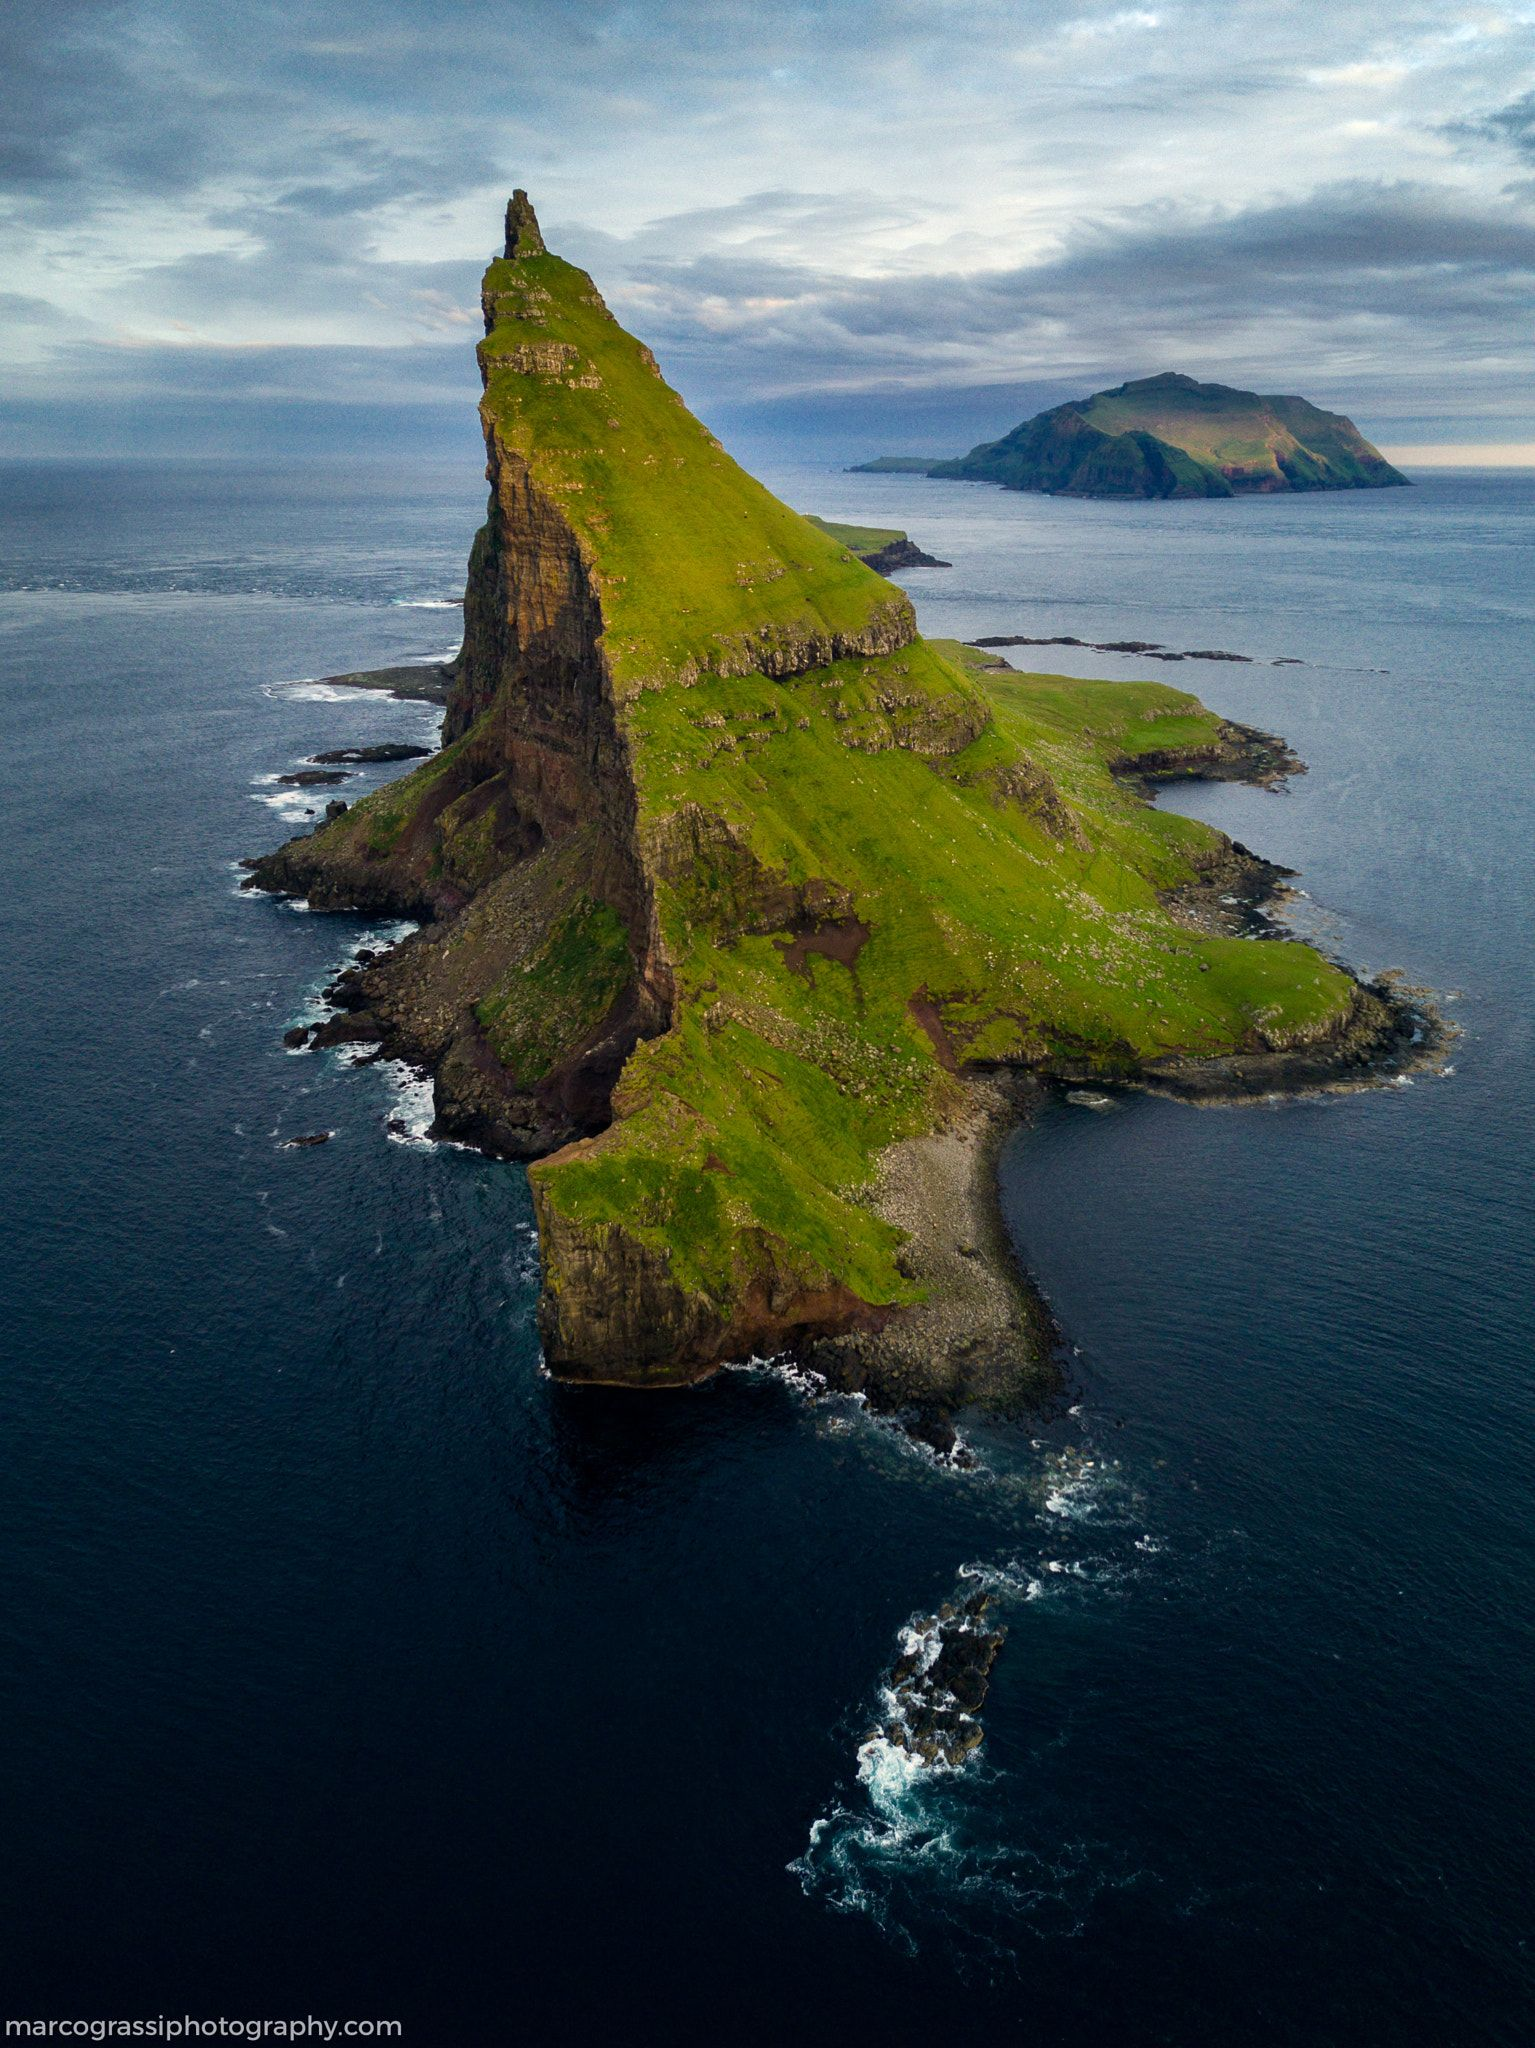 Islands Of The World Fashion Week 2012: Tindholmur, Faroe Islands. This Location